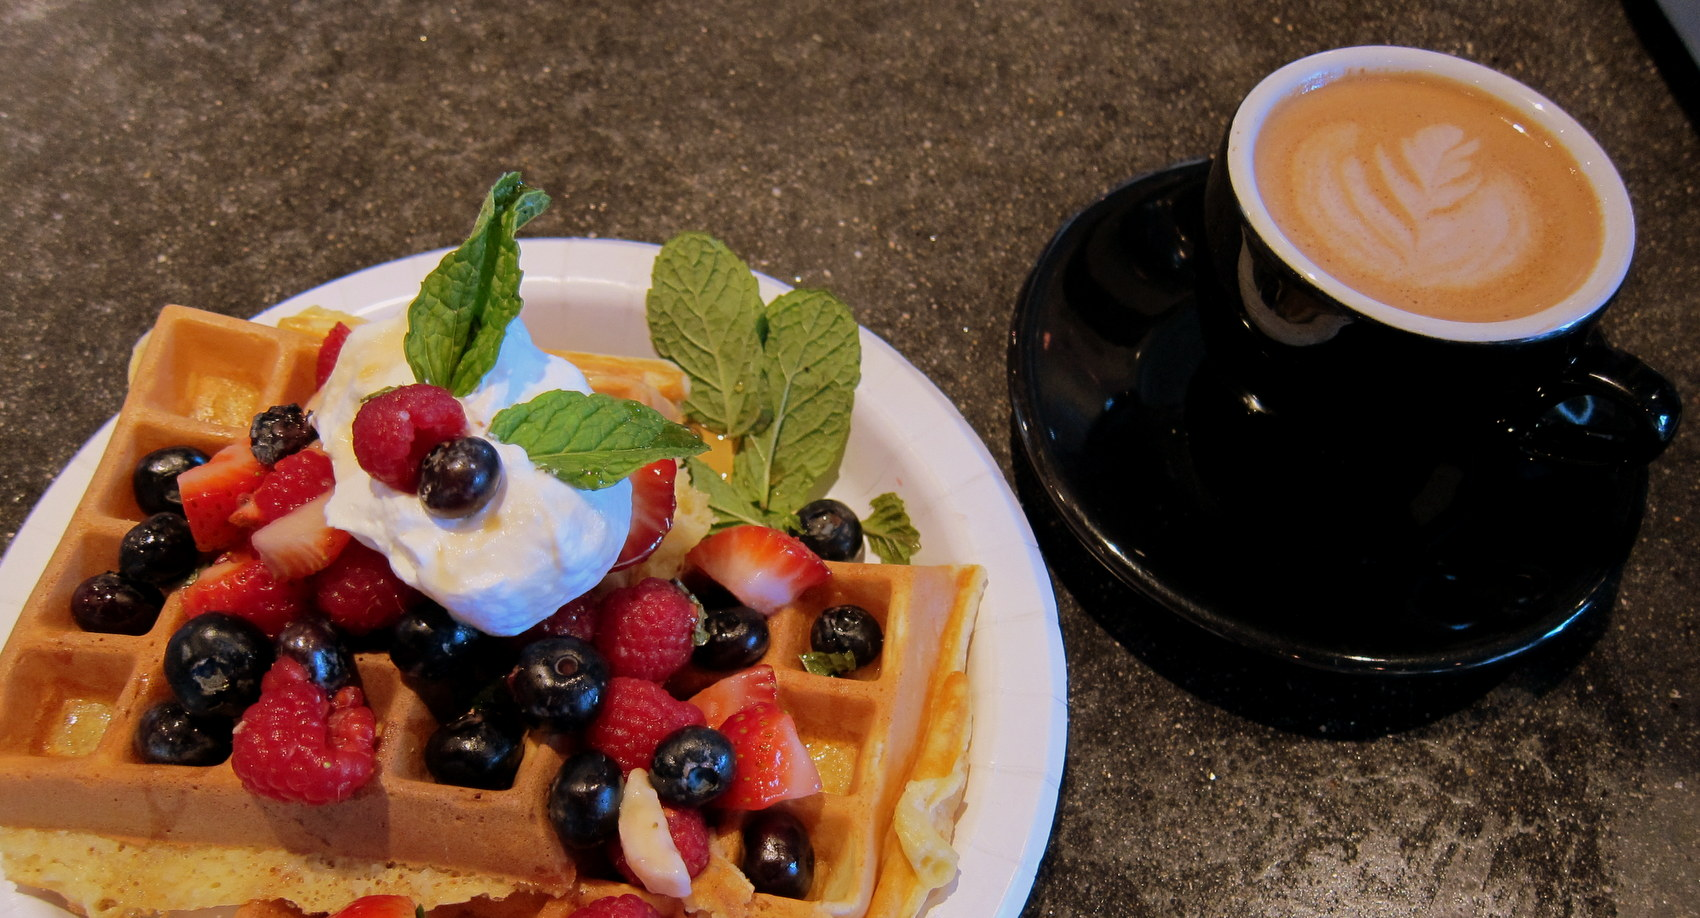 Waffles-before-Diverged-photo-Rob-Vandermark1.jpg